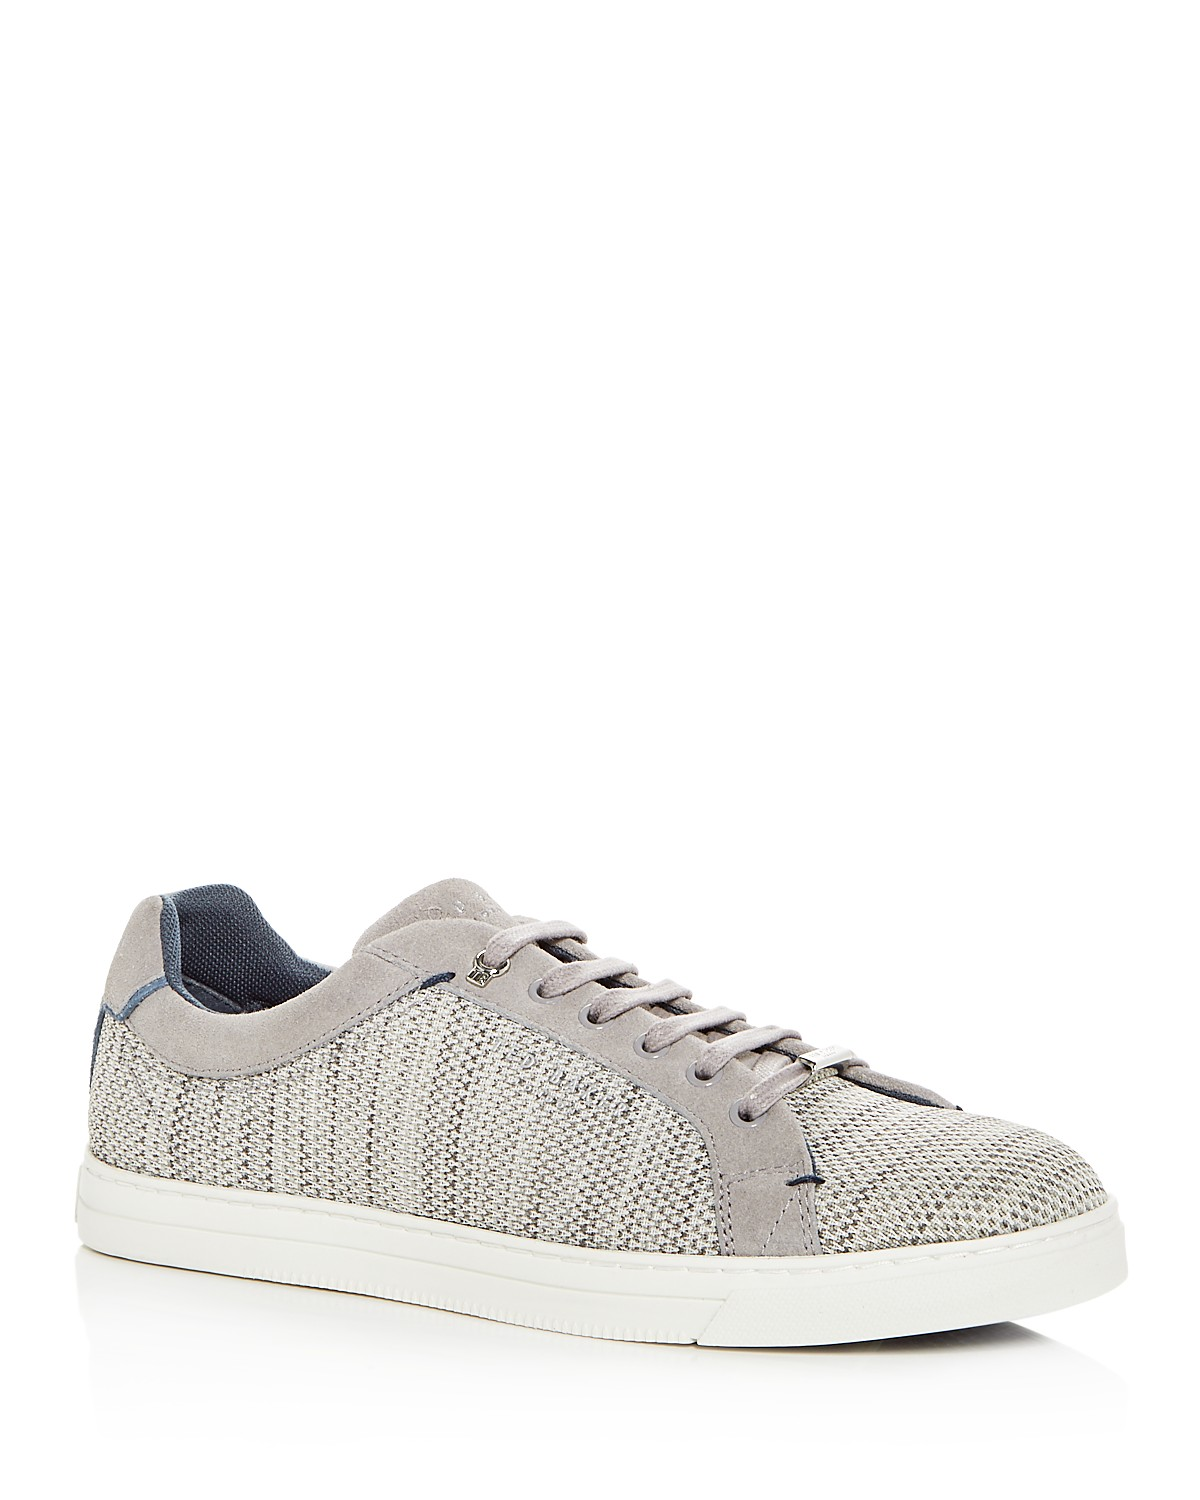 Ted Baker Men's Demes Lace Up Sneakers kWEkTh